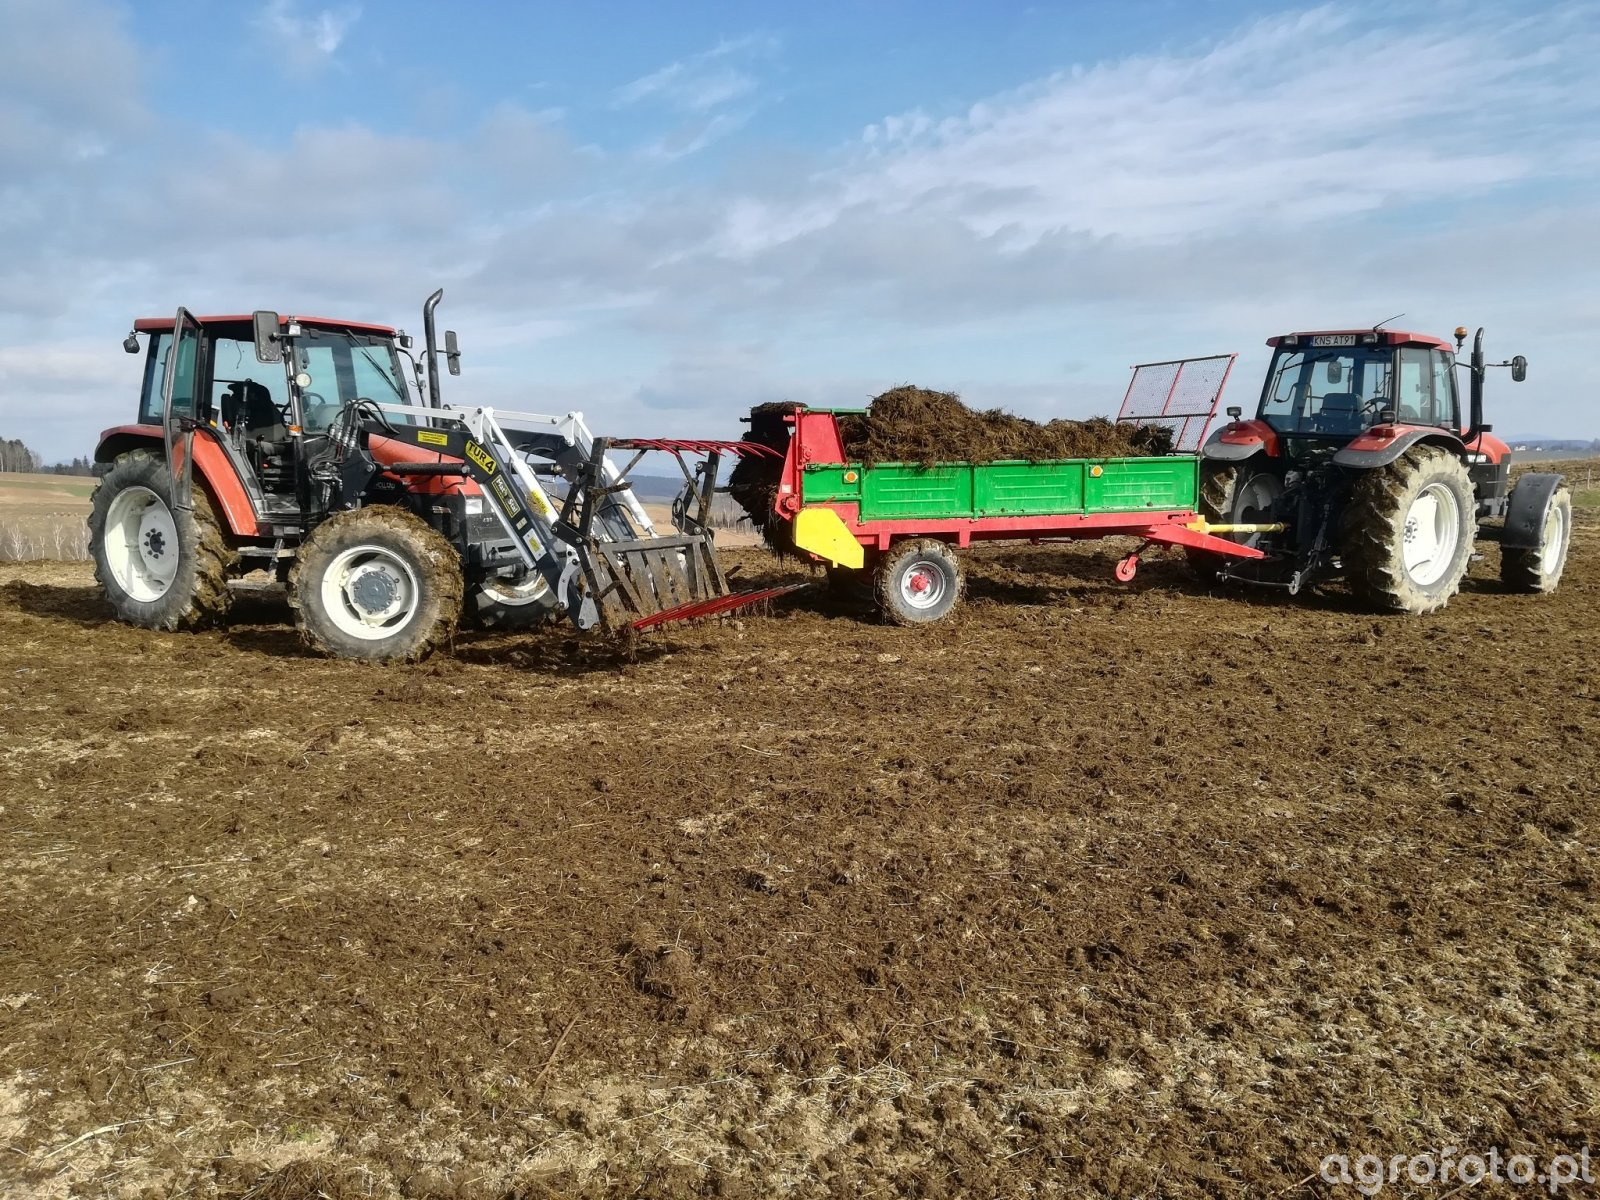 New Holland l85 Tur & New Holland M100